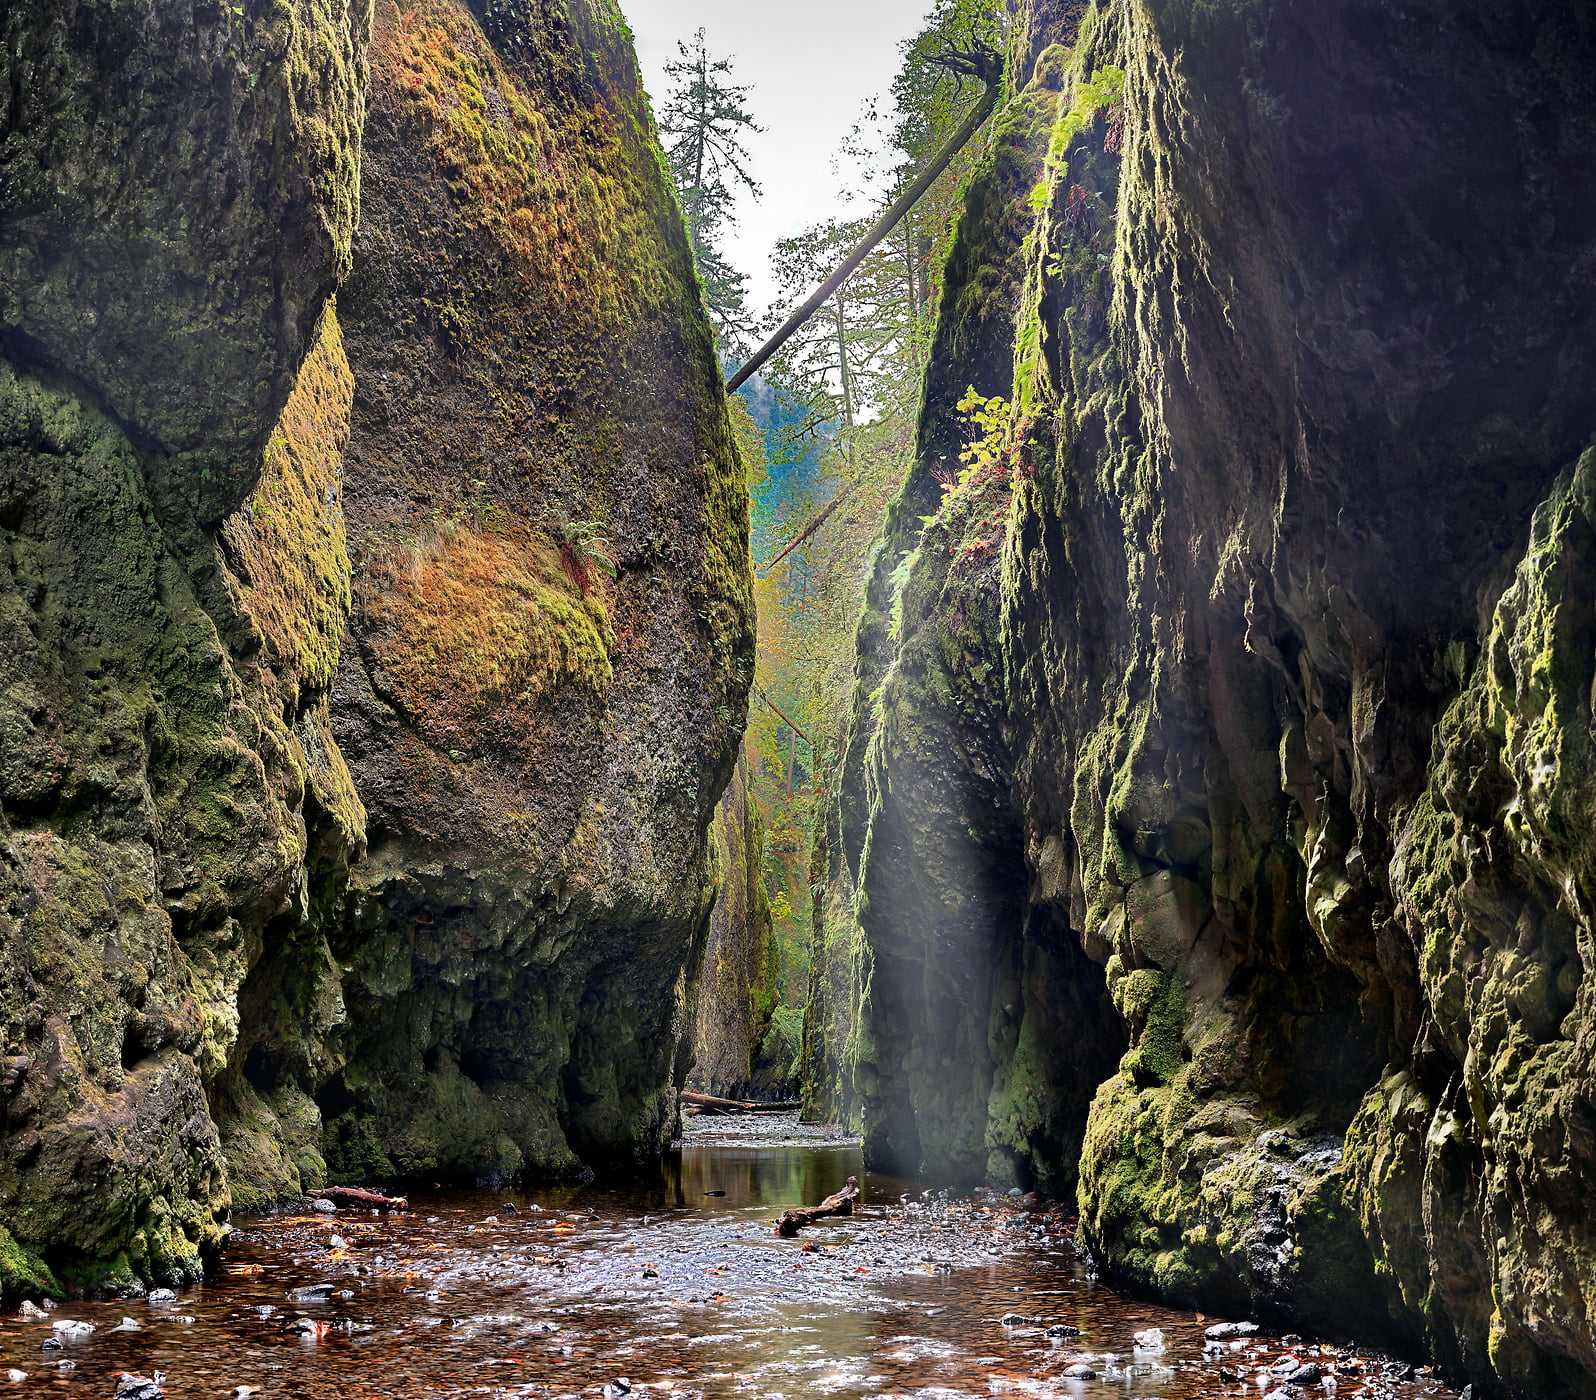 244 megapixels! A very high resolution nature photo of a hidden forest; VAST photo created by Phil Crawshay in Oneonta Gorge, Portland, Oregon